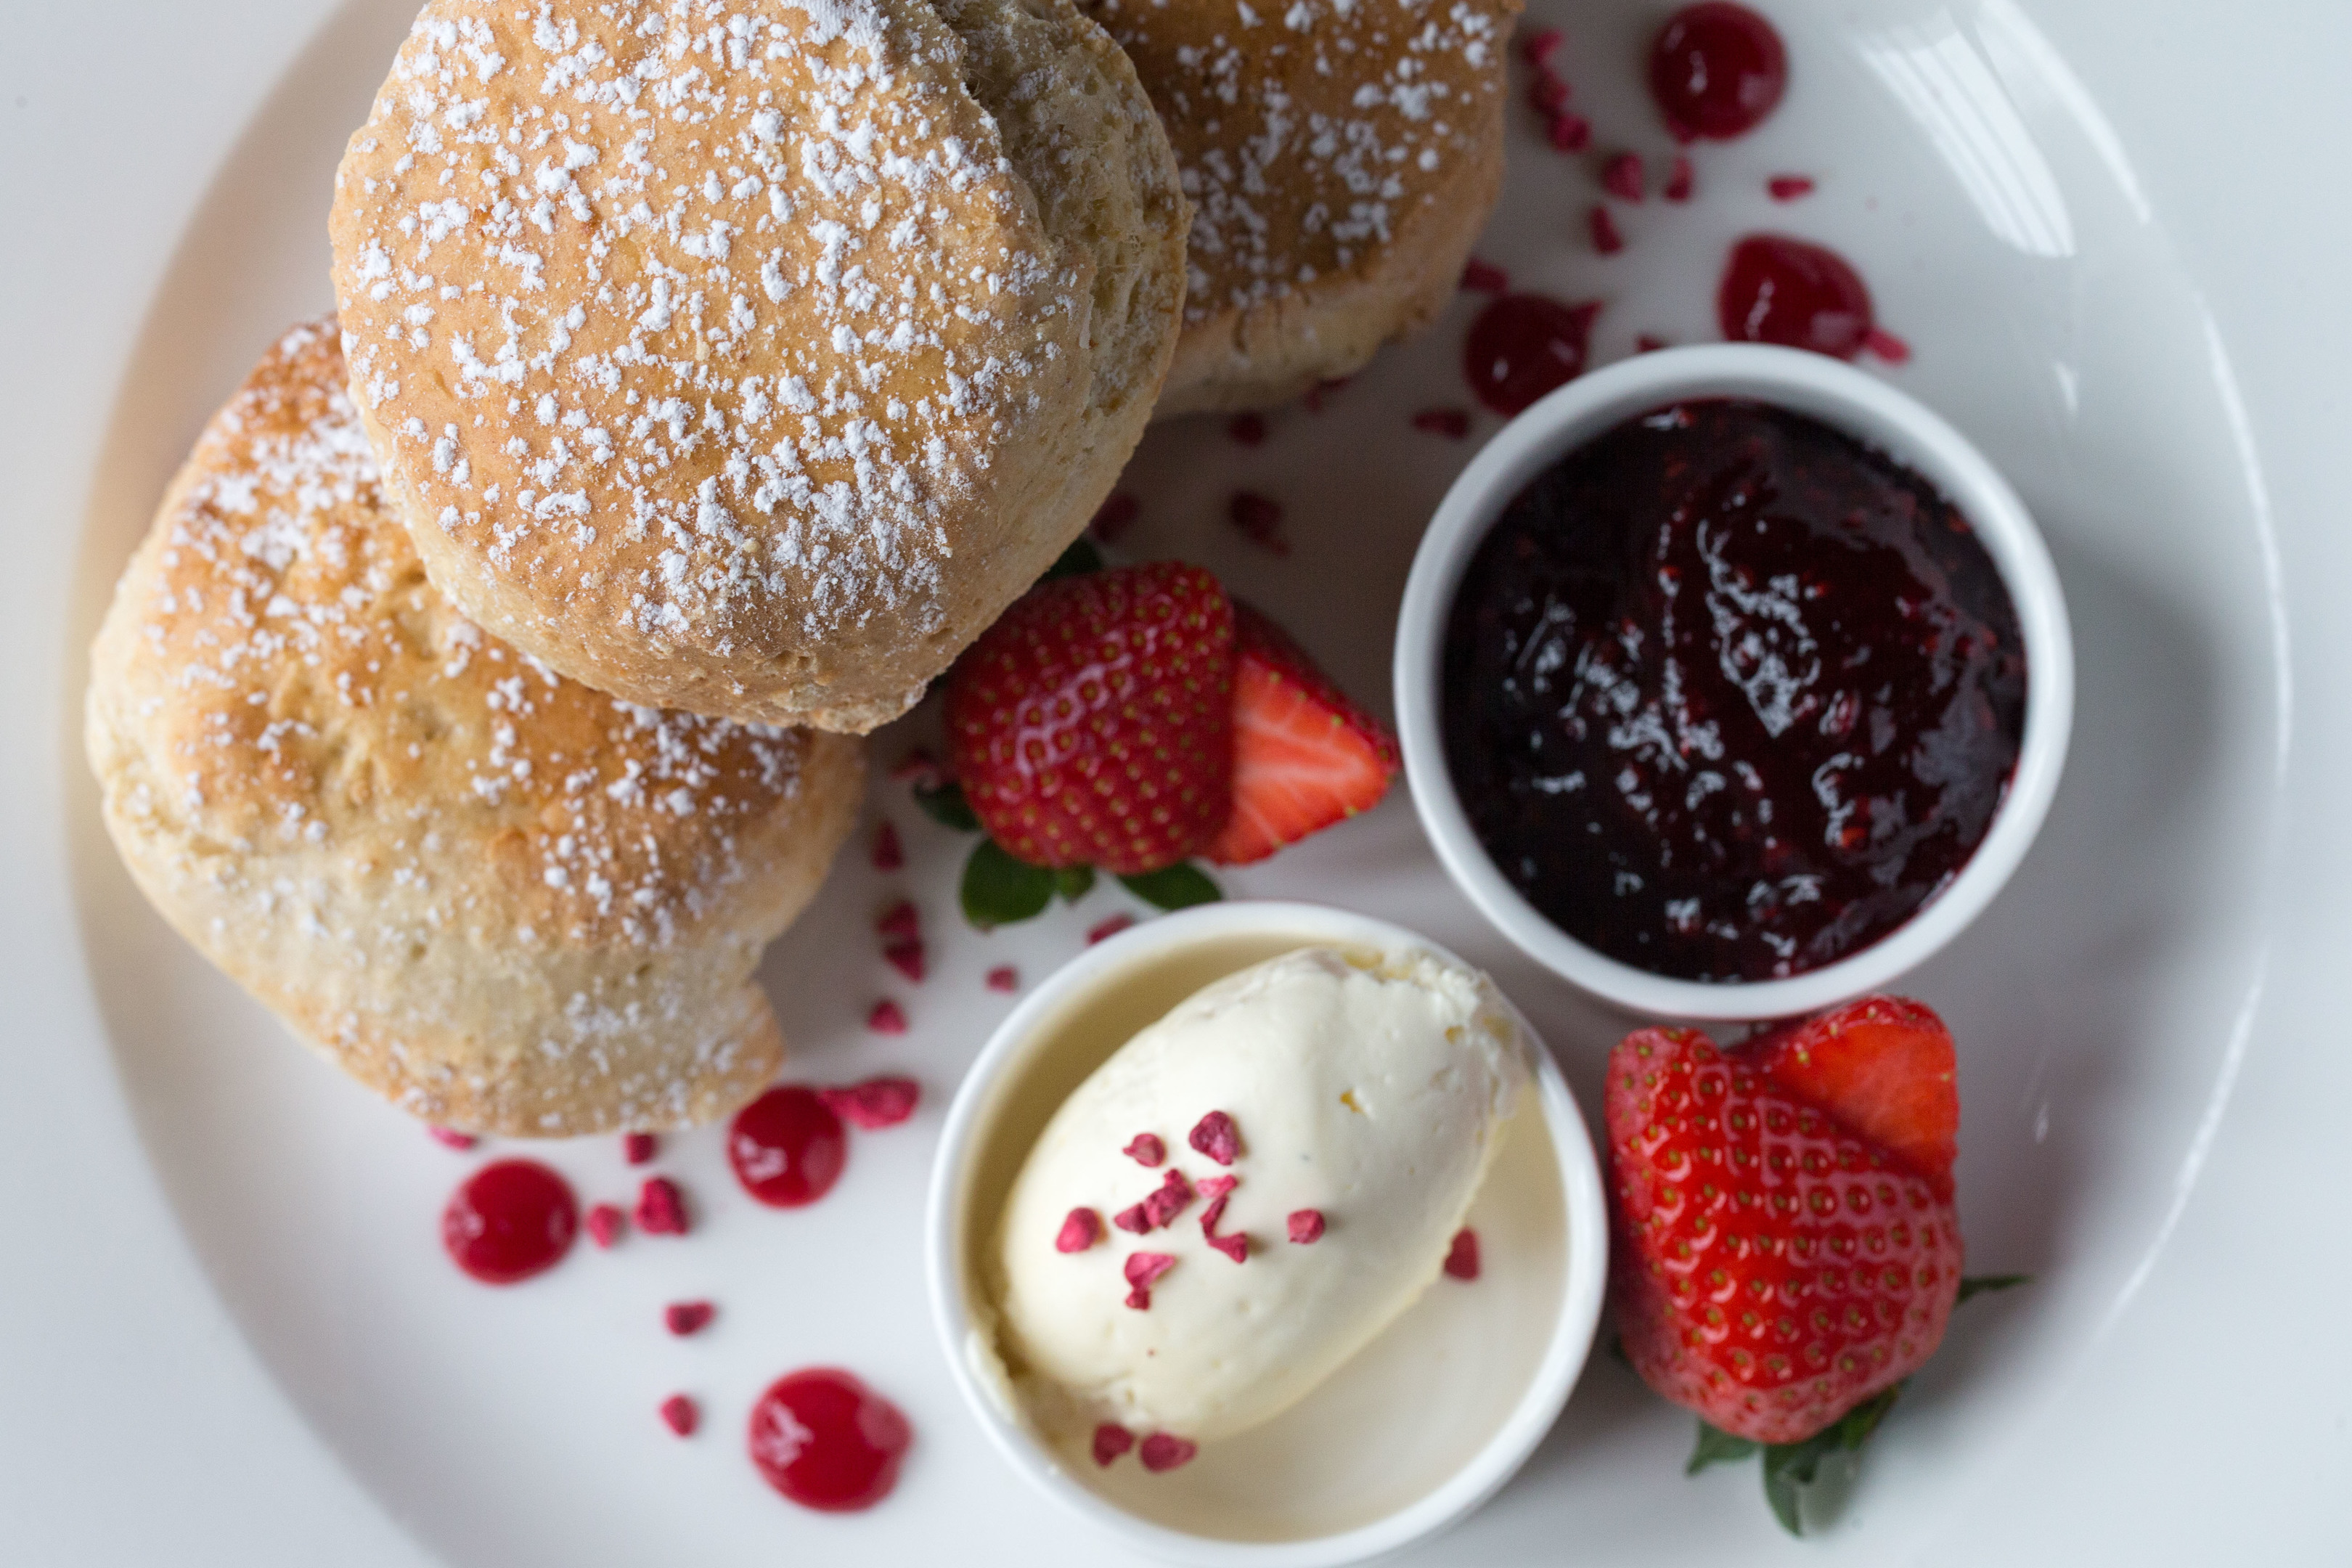 scone spy: an unforgettable experience at pittodrie house hotel